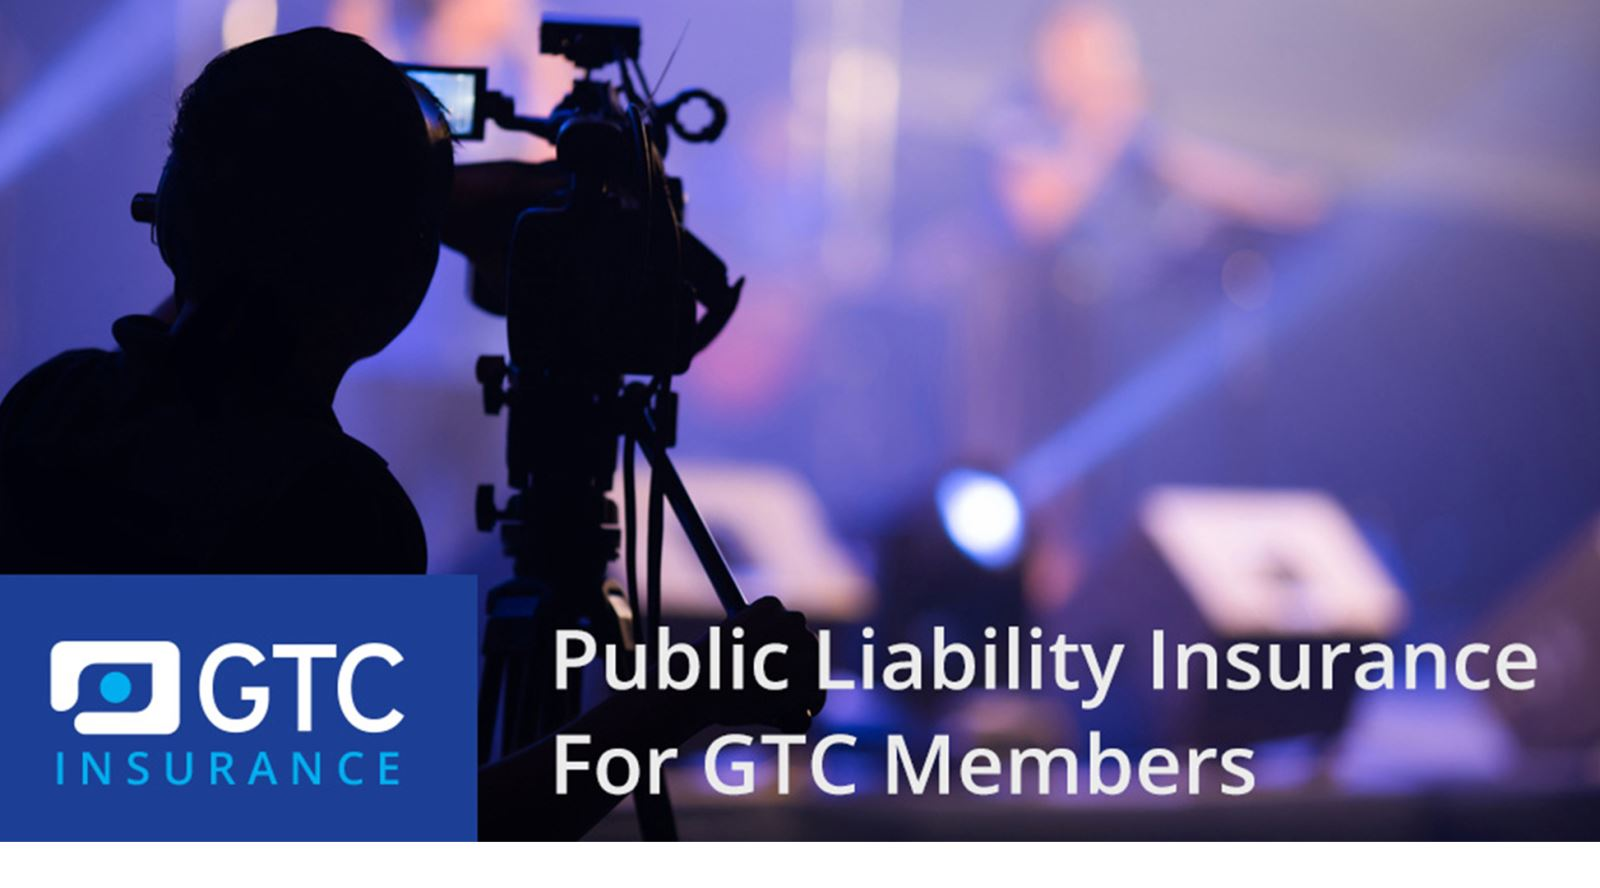 PLI scheme for GTC members provided by Performance Media - cover available from 1 May 2017